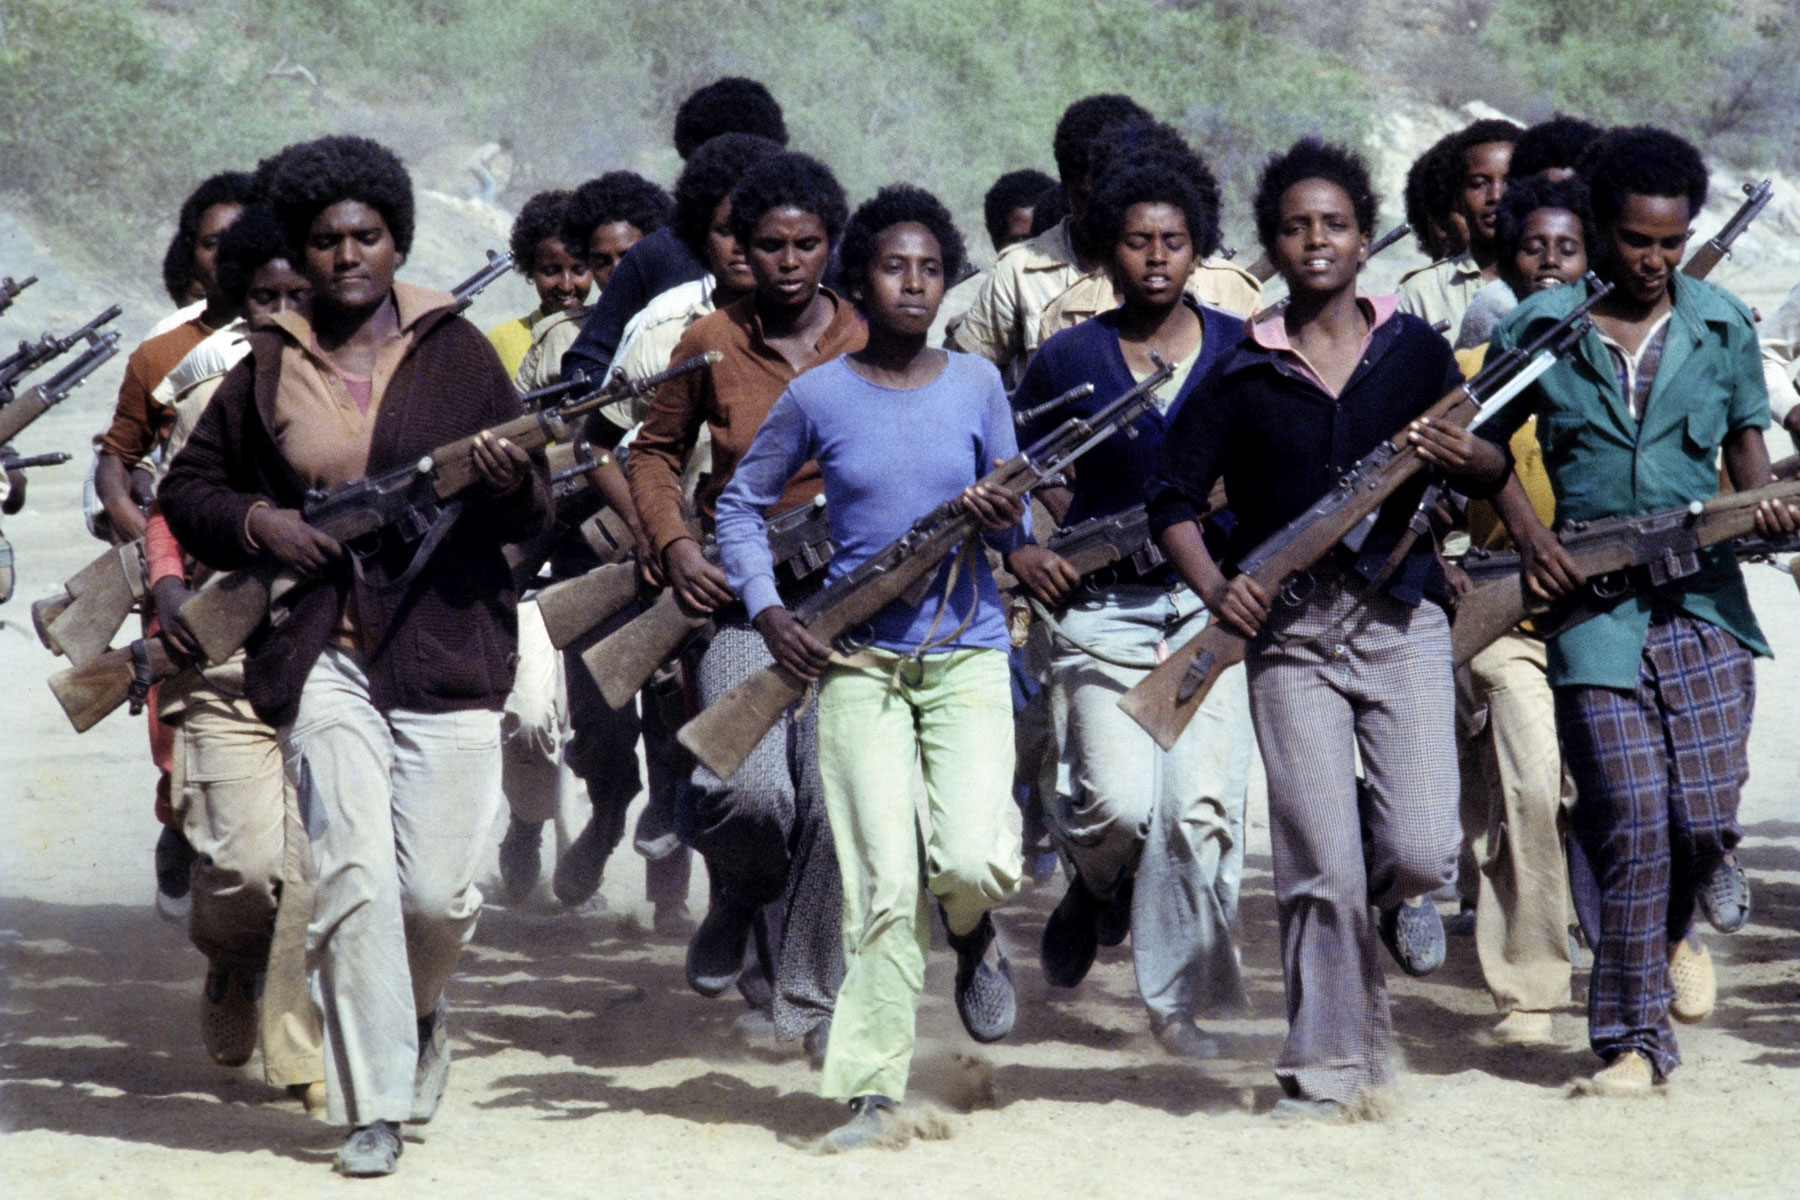 18 June 1978: Young men and women undergo military training at an Eritrean People's Liberation Front camp in the mountains of northern Eritrea in Ethiopia. (Photograph by Alex Bowie/ Getty Images)